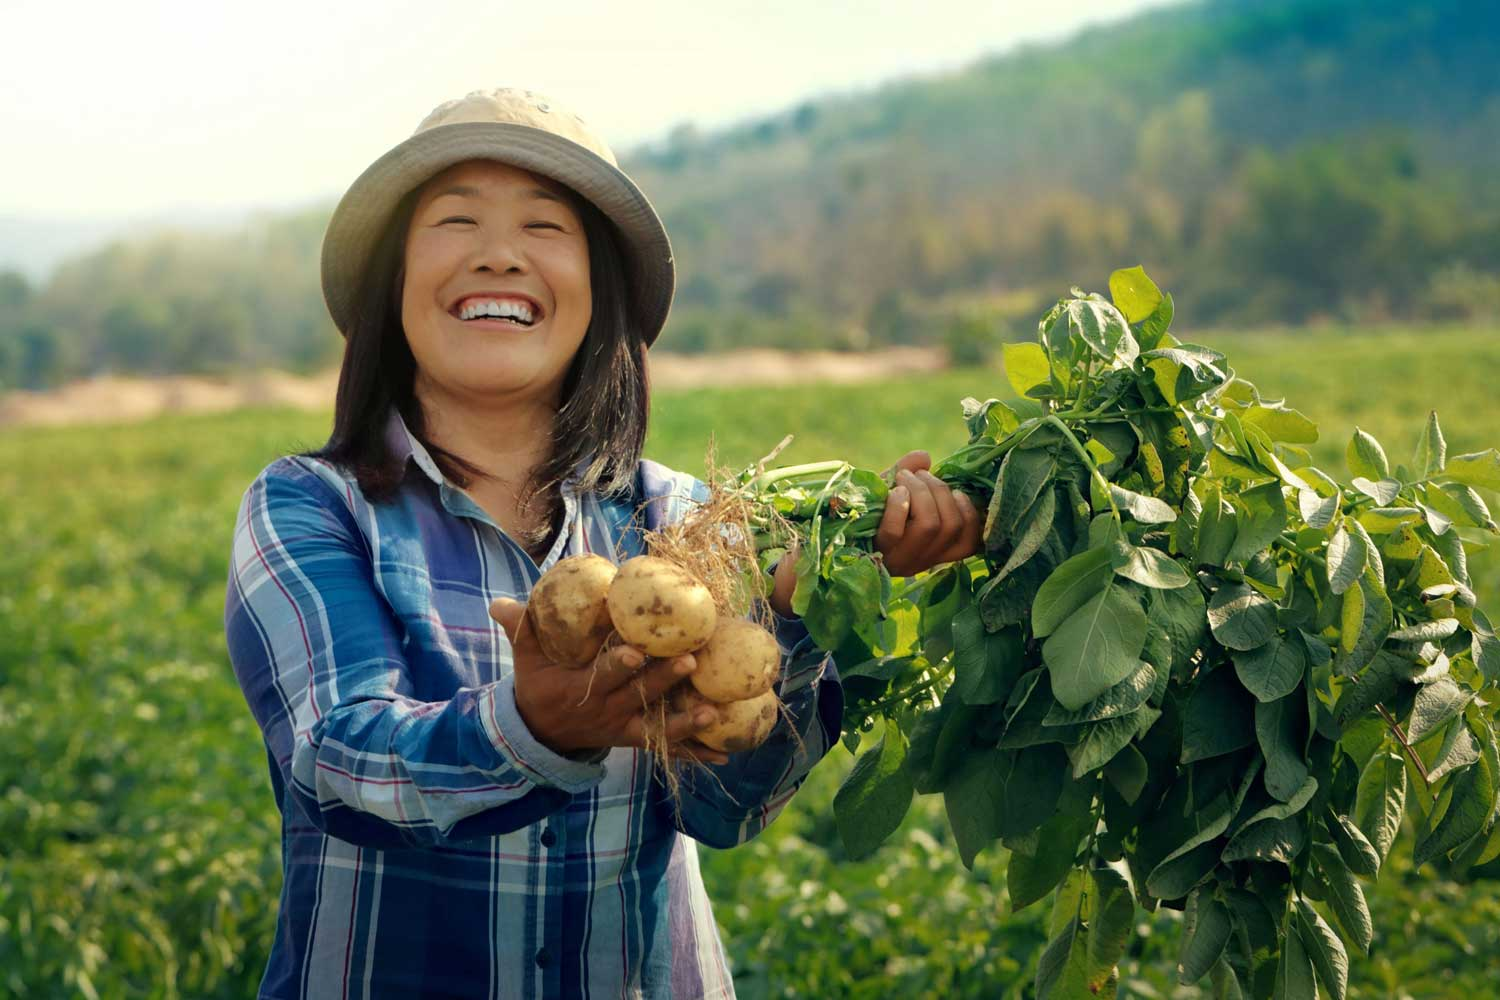 PepsiCo announces 2030 goal to scale regenerative farming practices across 7 million acres